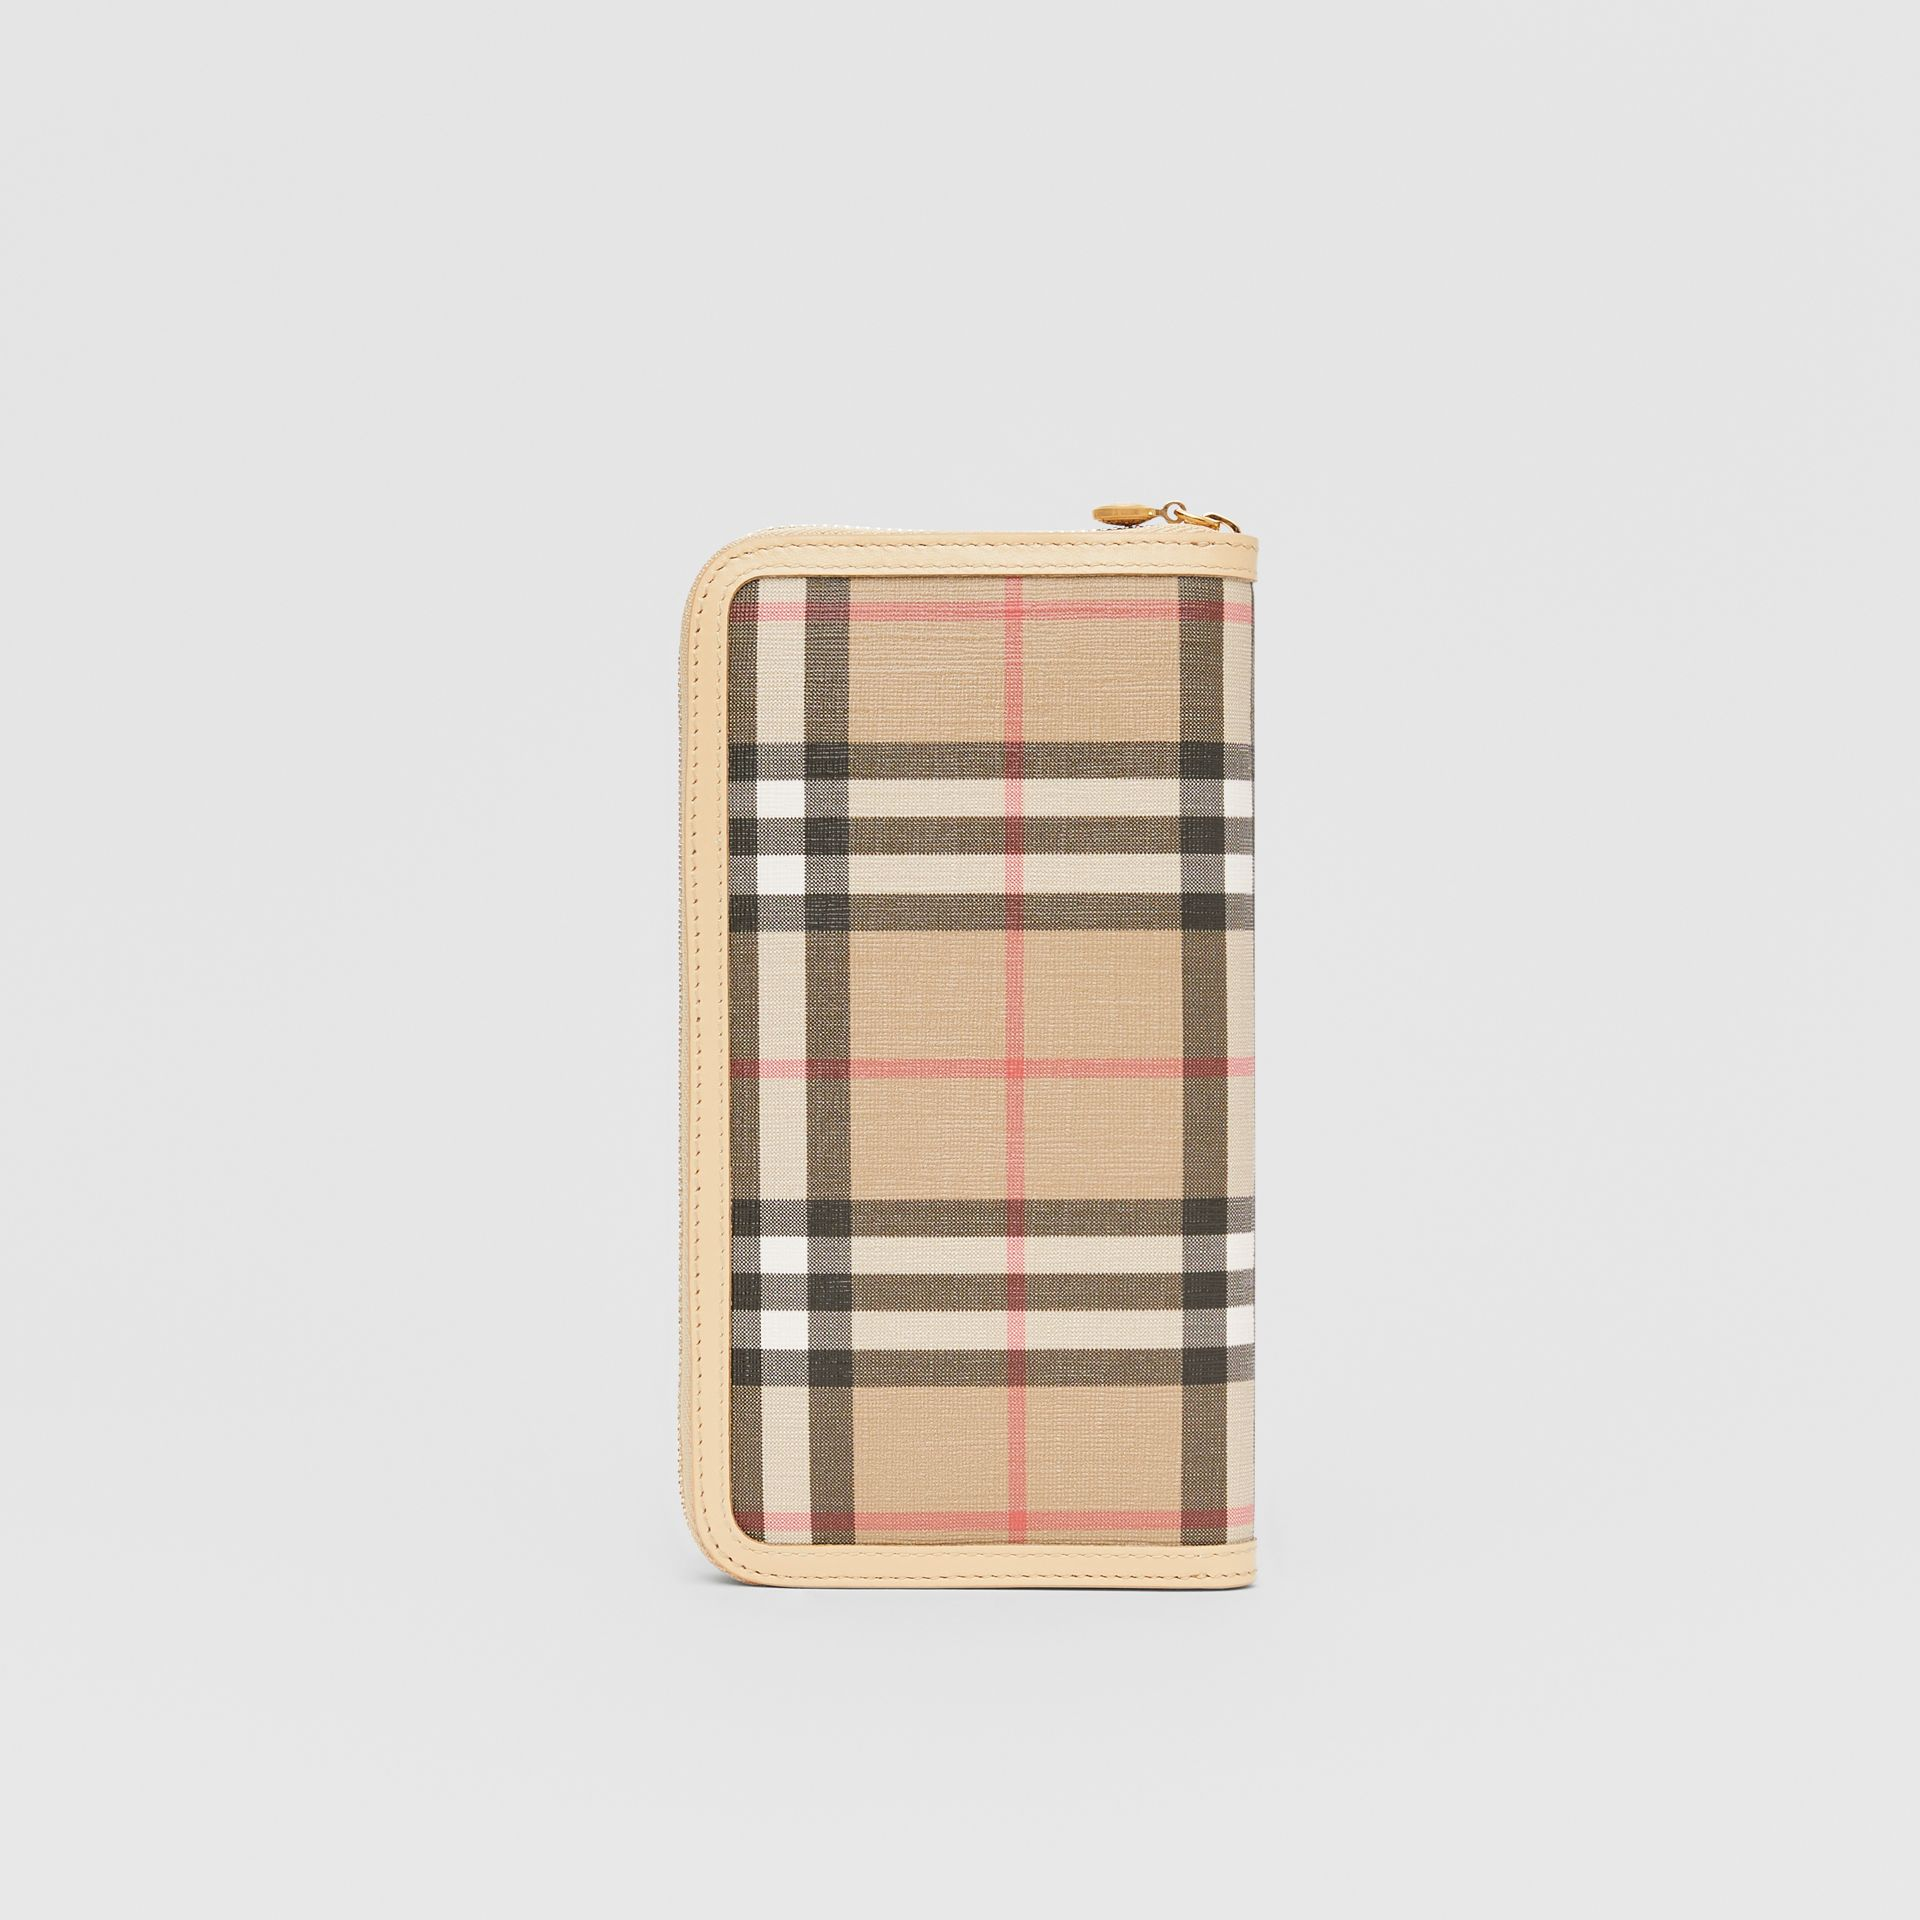 Vintage Check E-canvas and Leather Wallet in Beige - Women | Burberry - gallery image 4